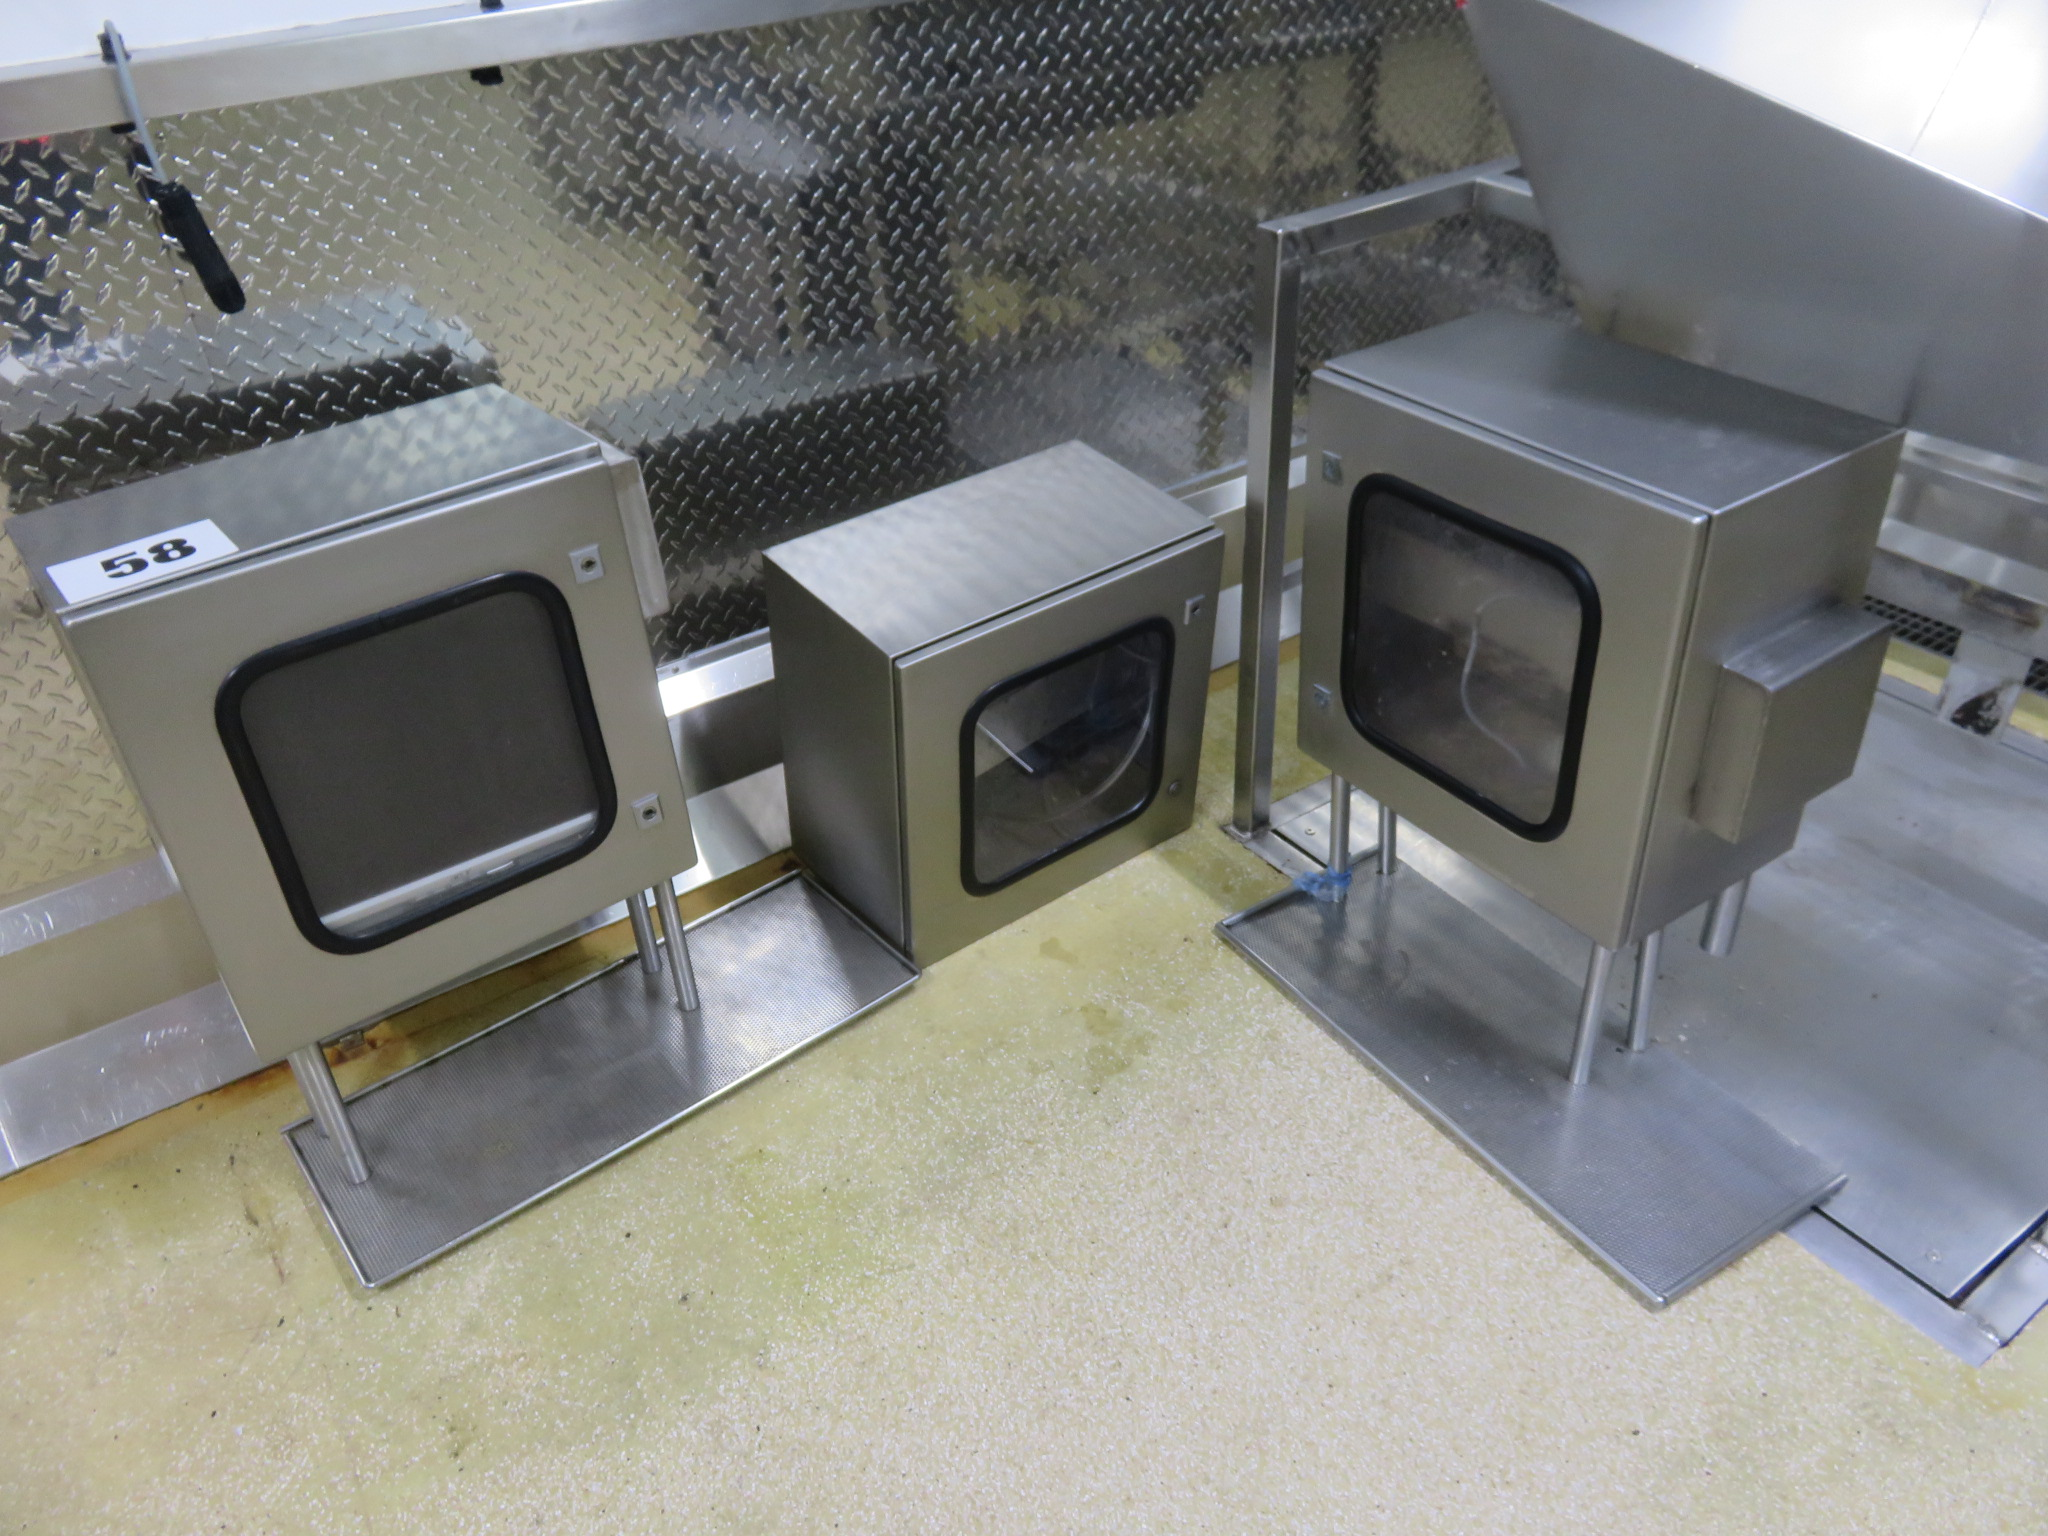 Lot 58 - 3 x S/s Computer Cabinets. Lift out £15